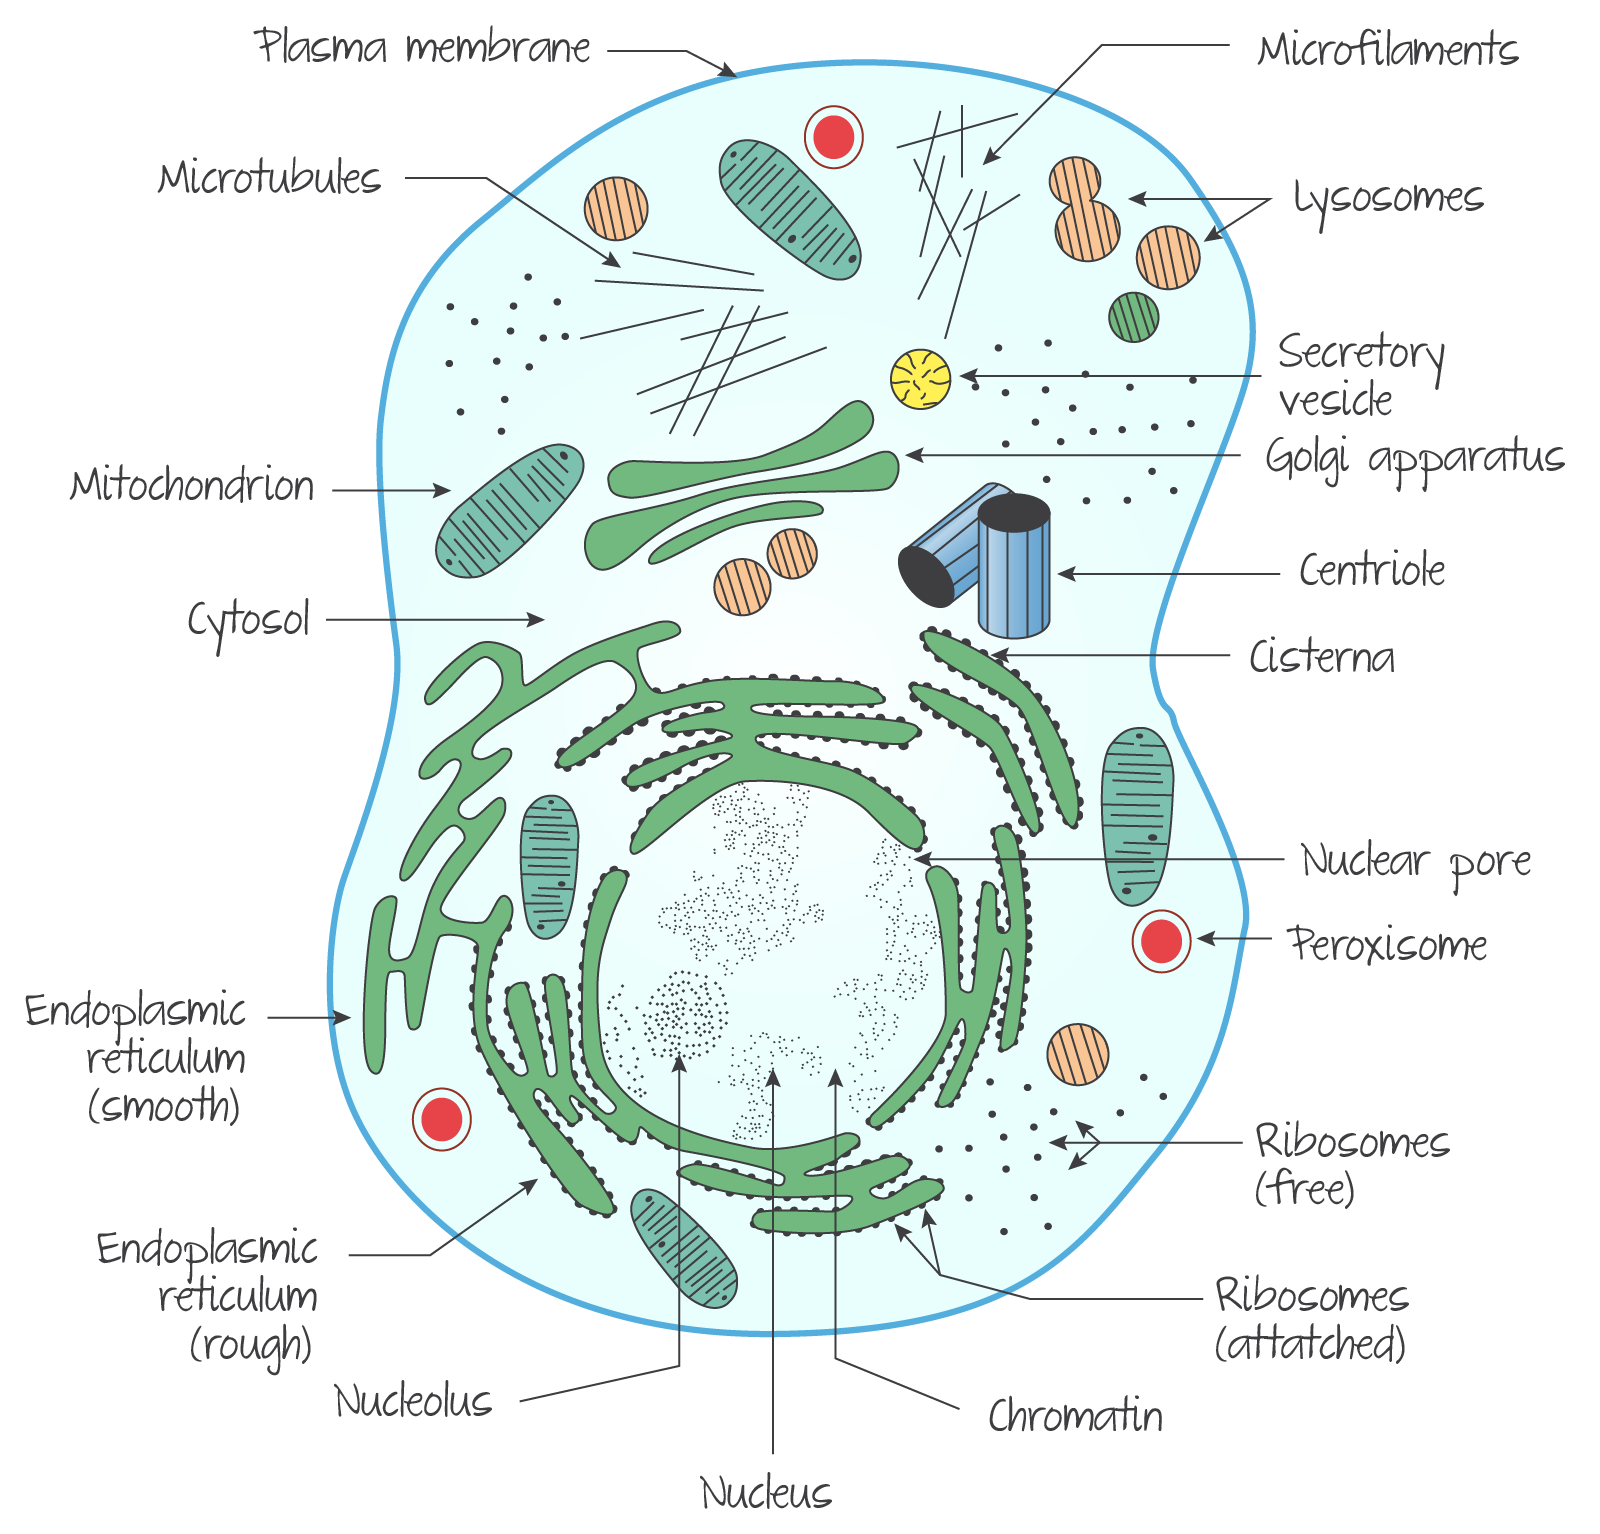 Ultrastructure Of A Eukaryotic Cell An Animal Cell การศ กษา